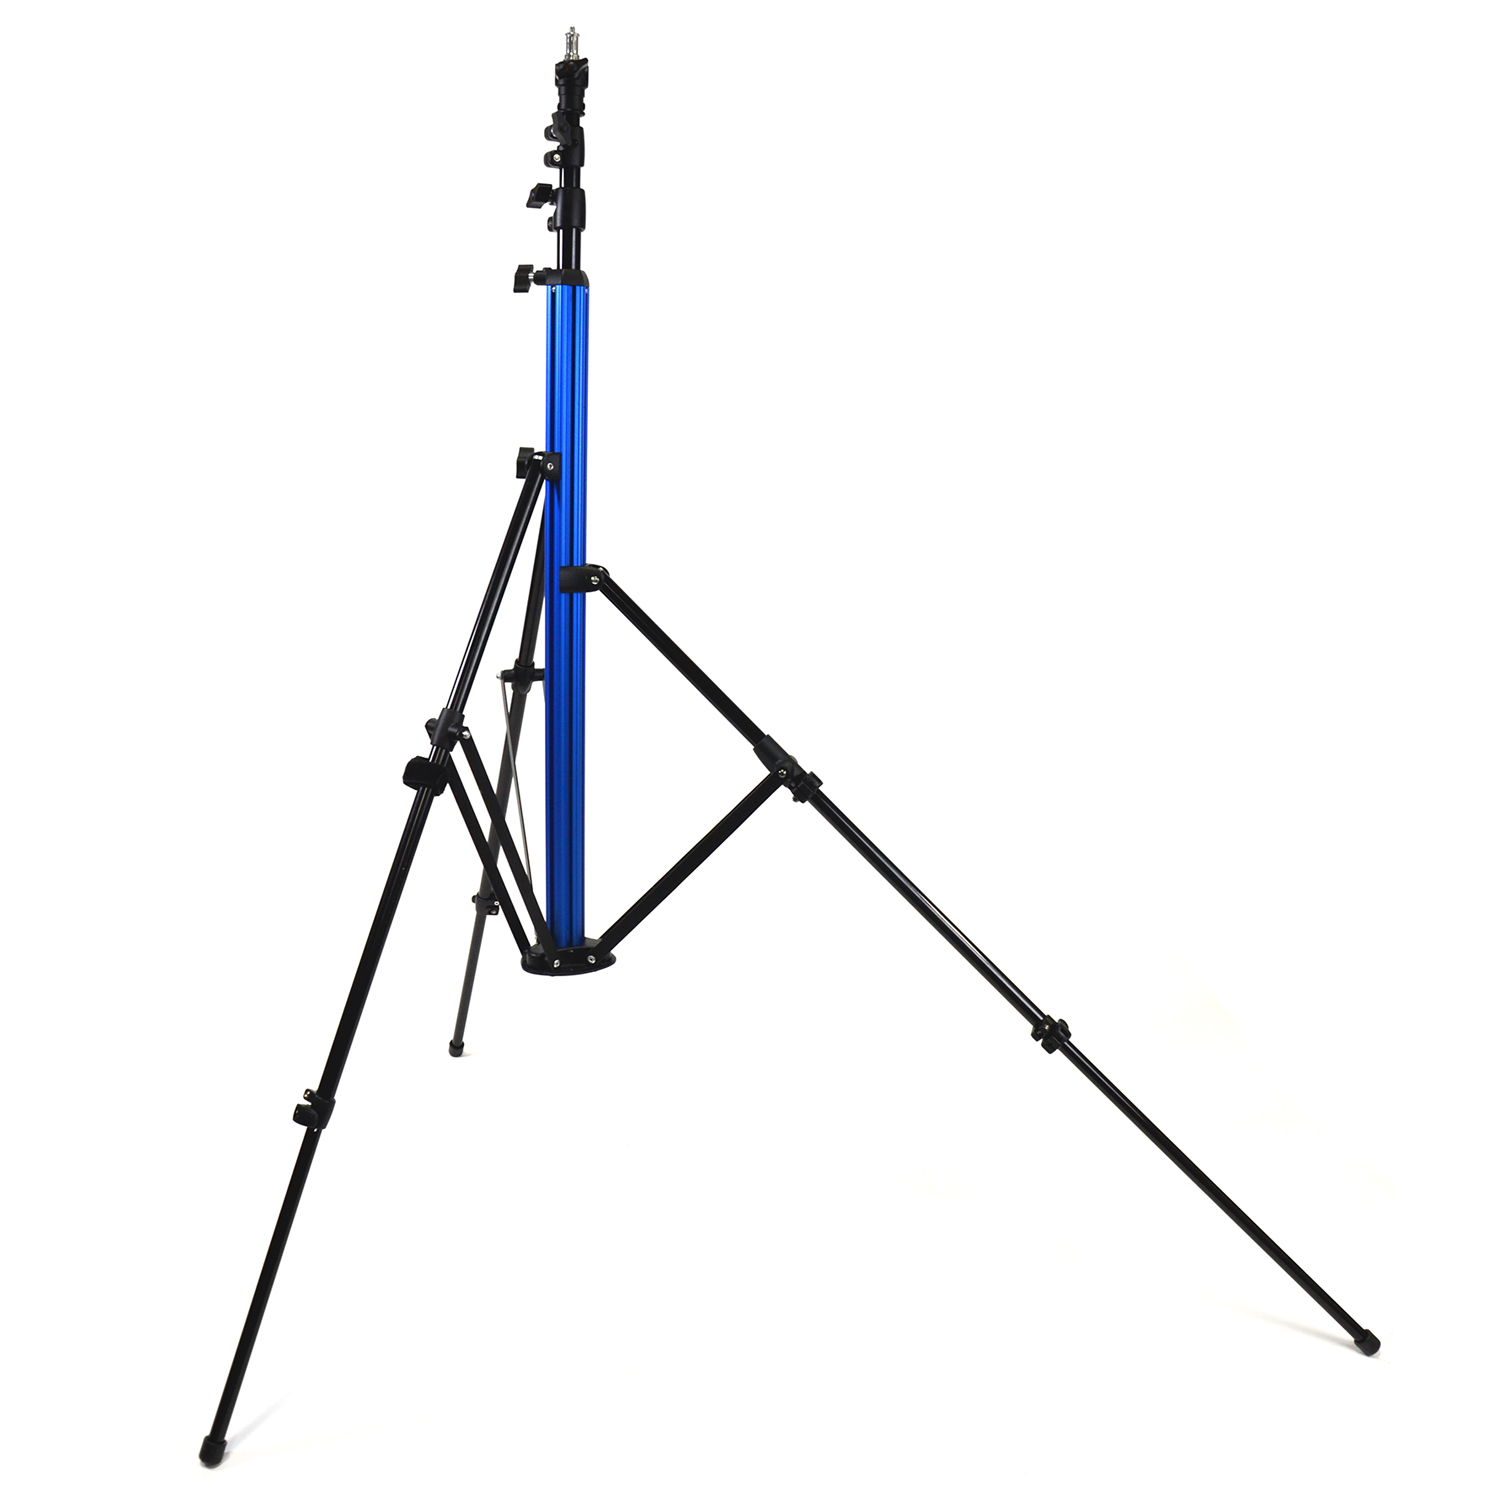 MultiFlex 10 Lightstand by Savage